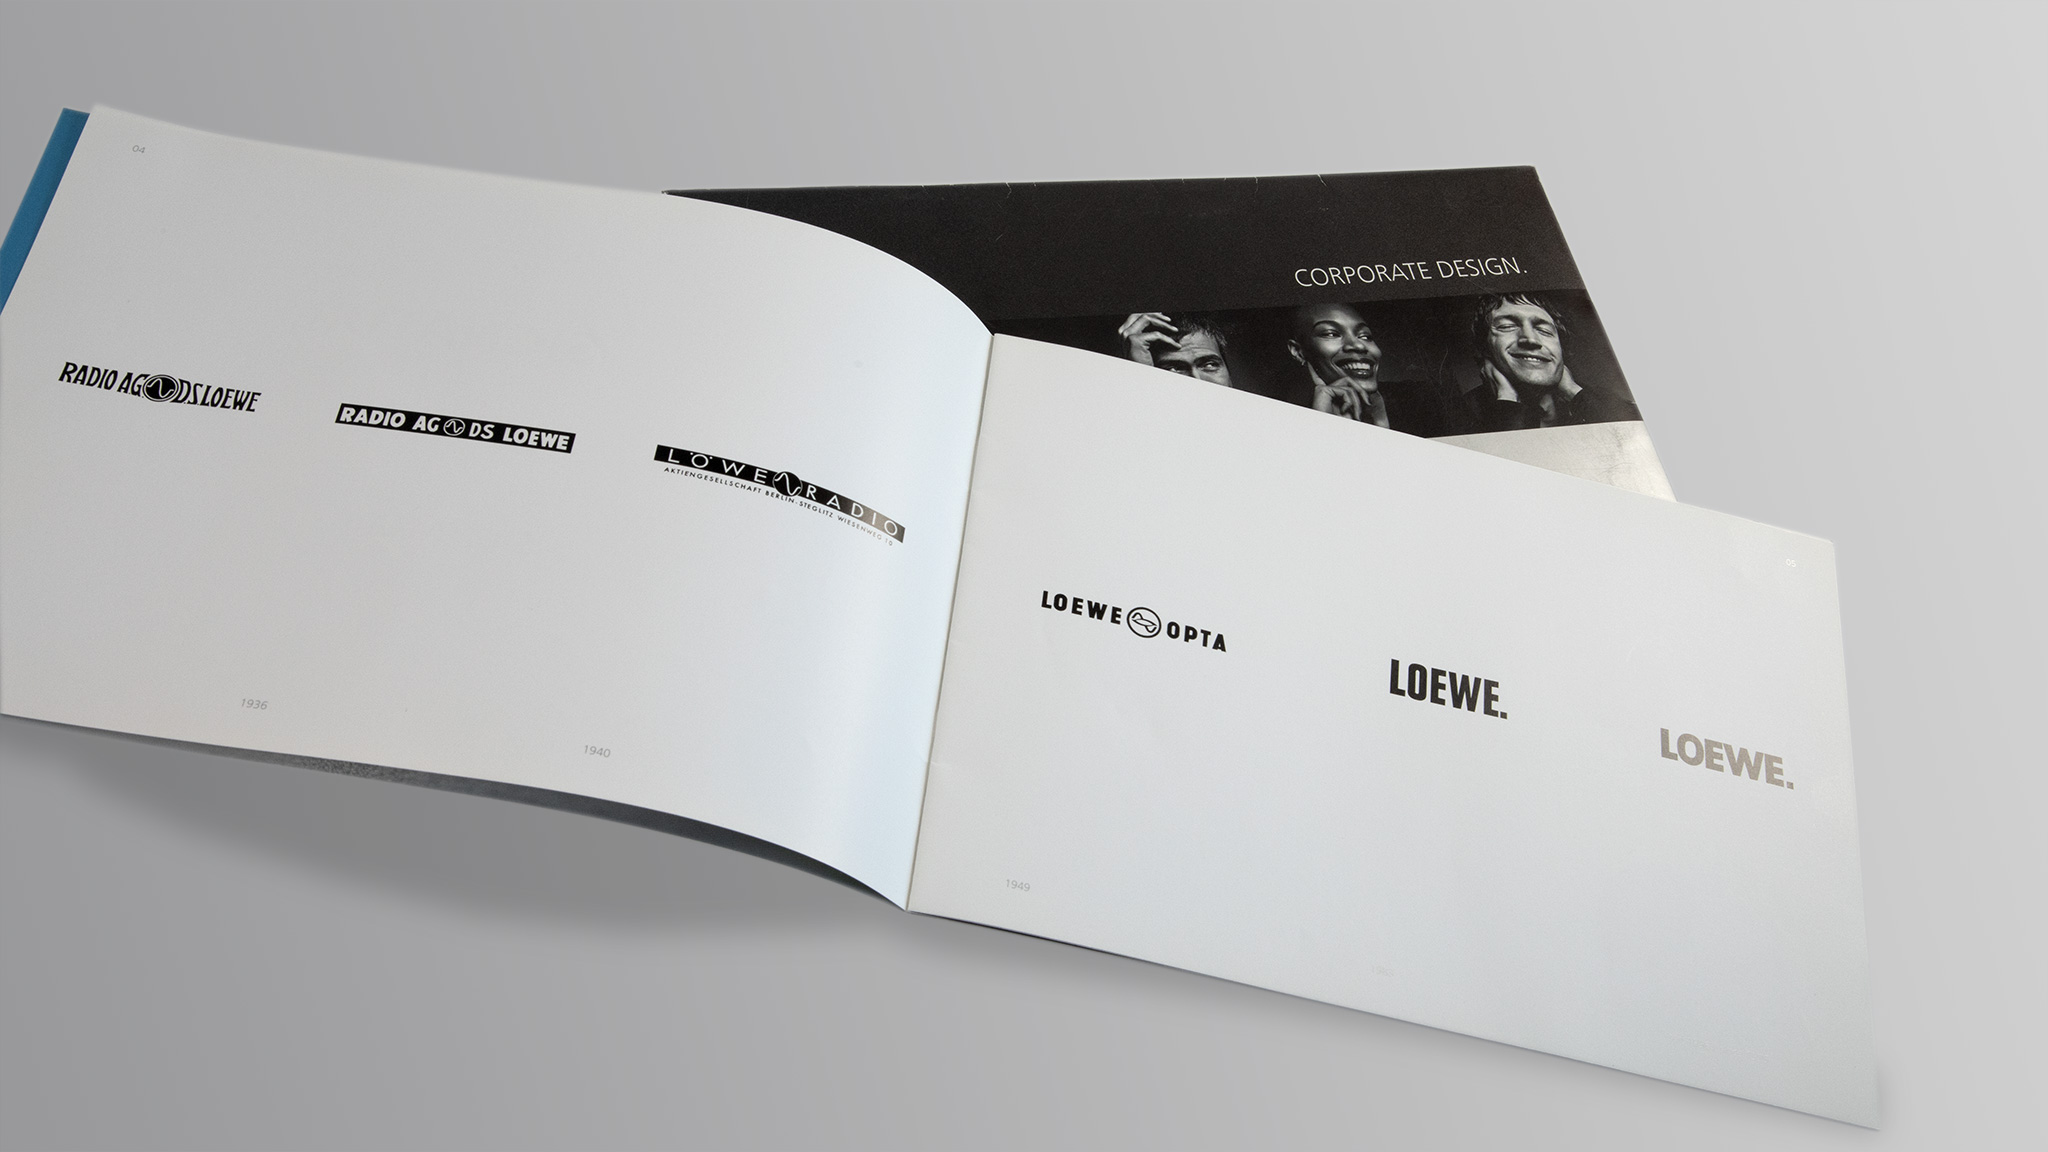 19_Loewe-Corporate-Design-Manual-4